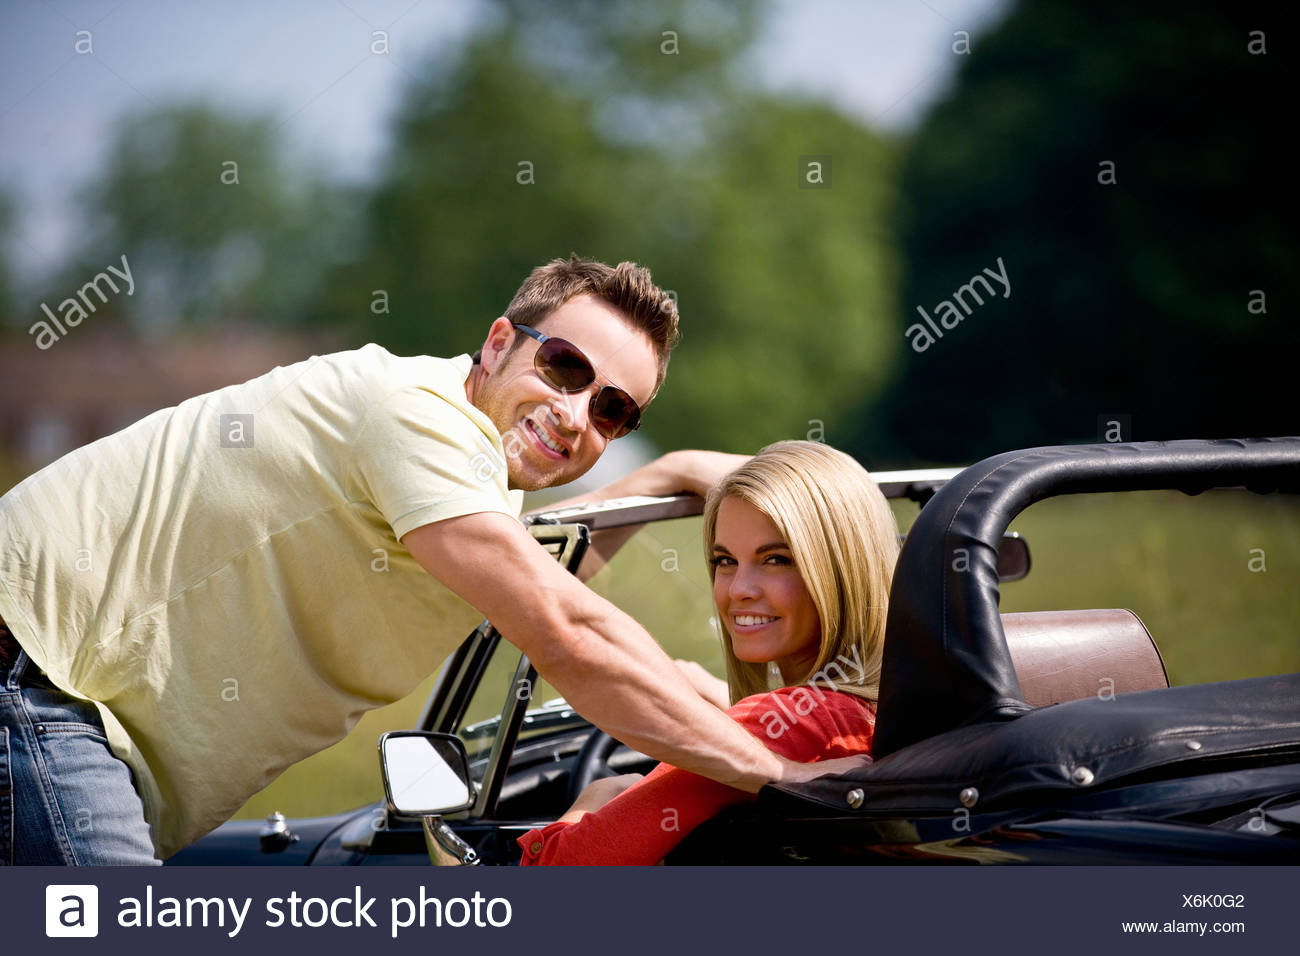 A young man standing next to a young woman in a black sports car Stock Photo